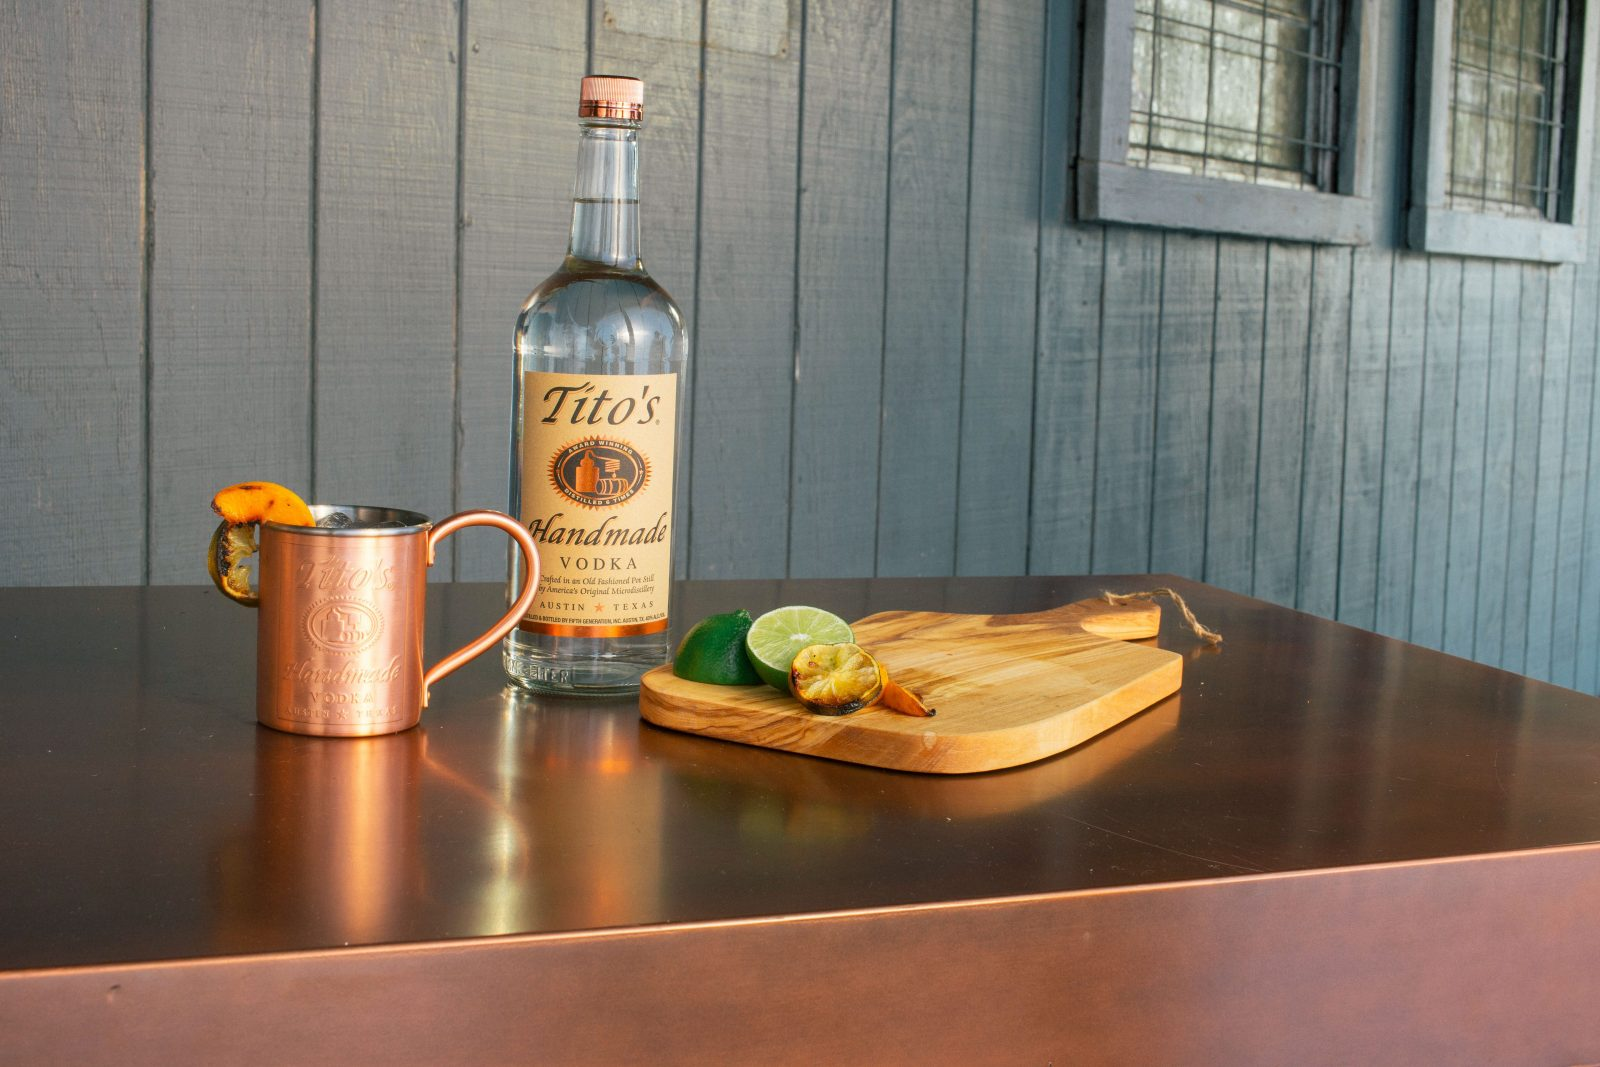 Get Fired up for a Smokin' Summer | Tito's Handmade Vodka